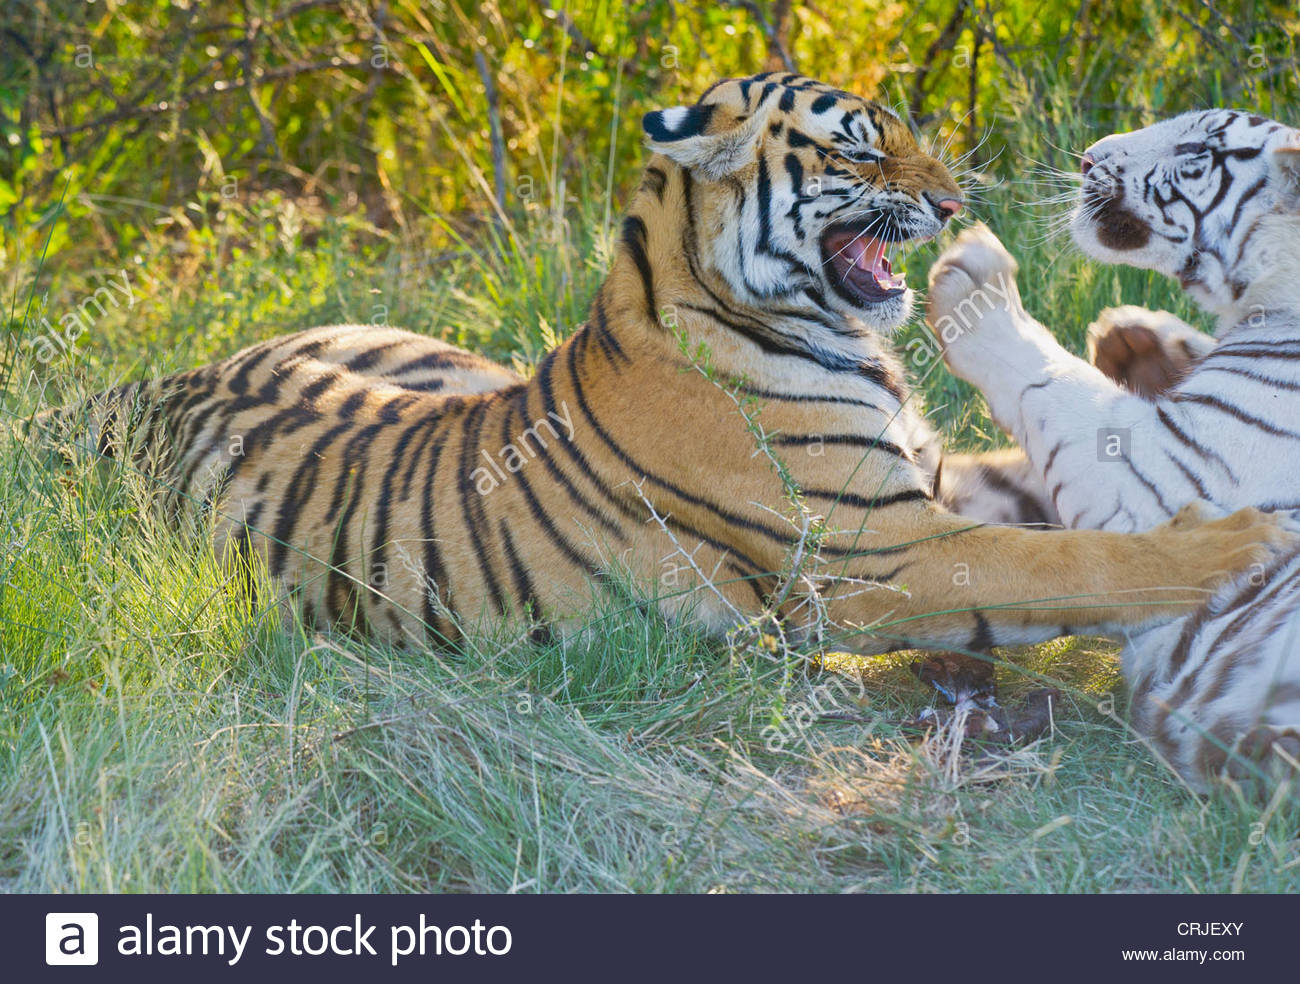 South Africa. Orange and White Tigers Snarling - Stock Image